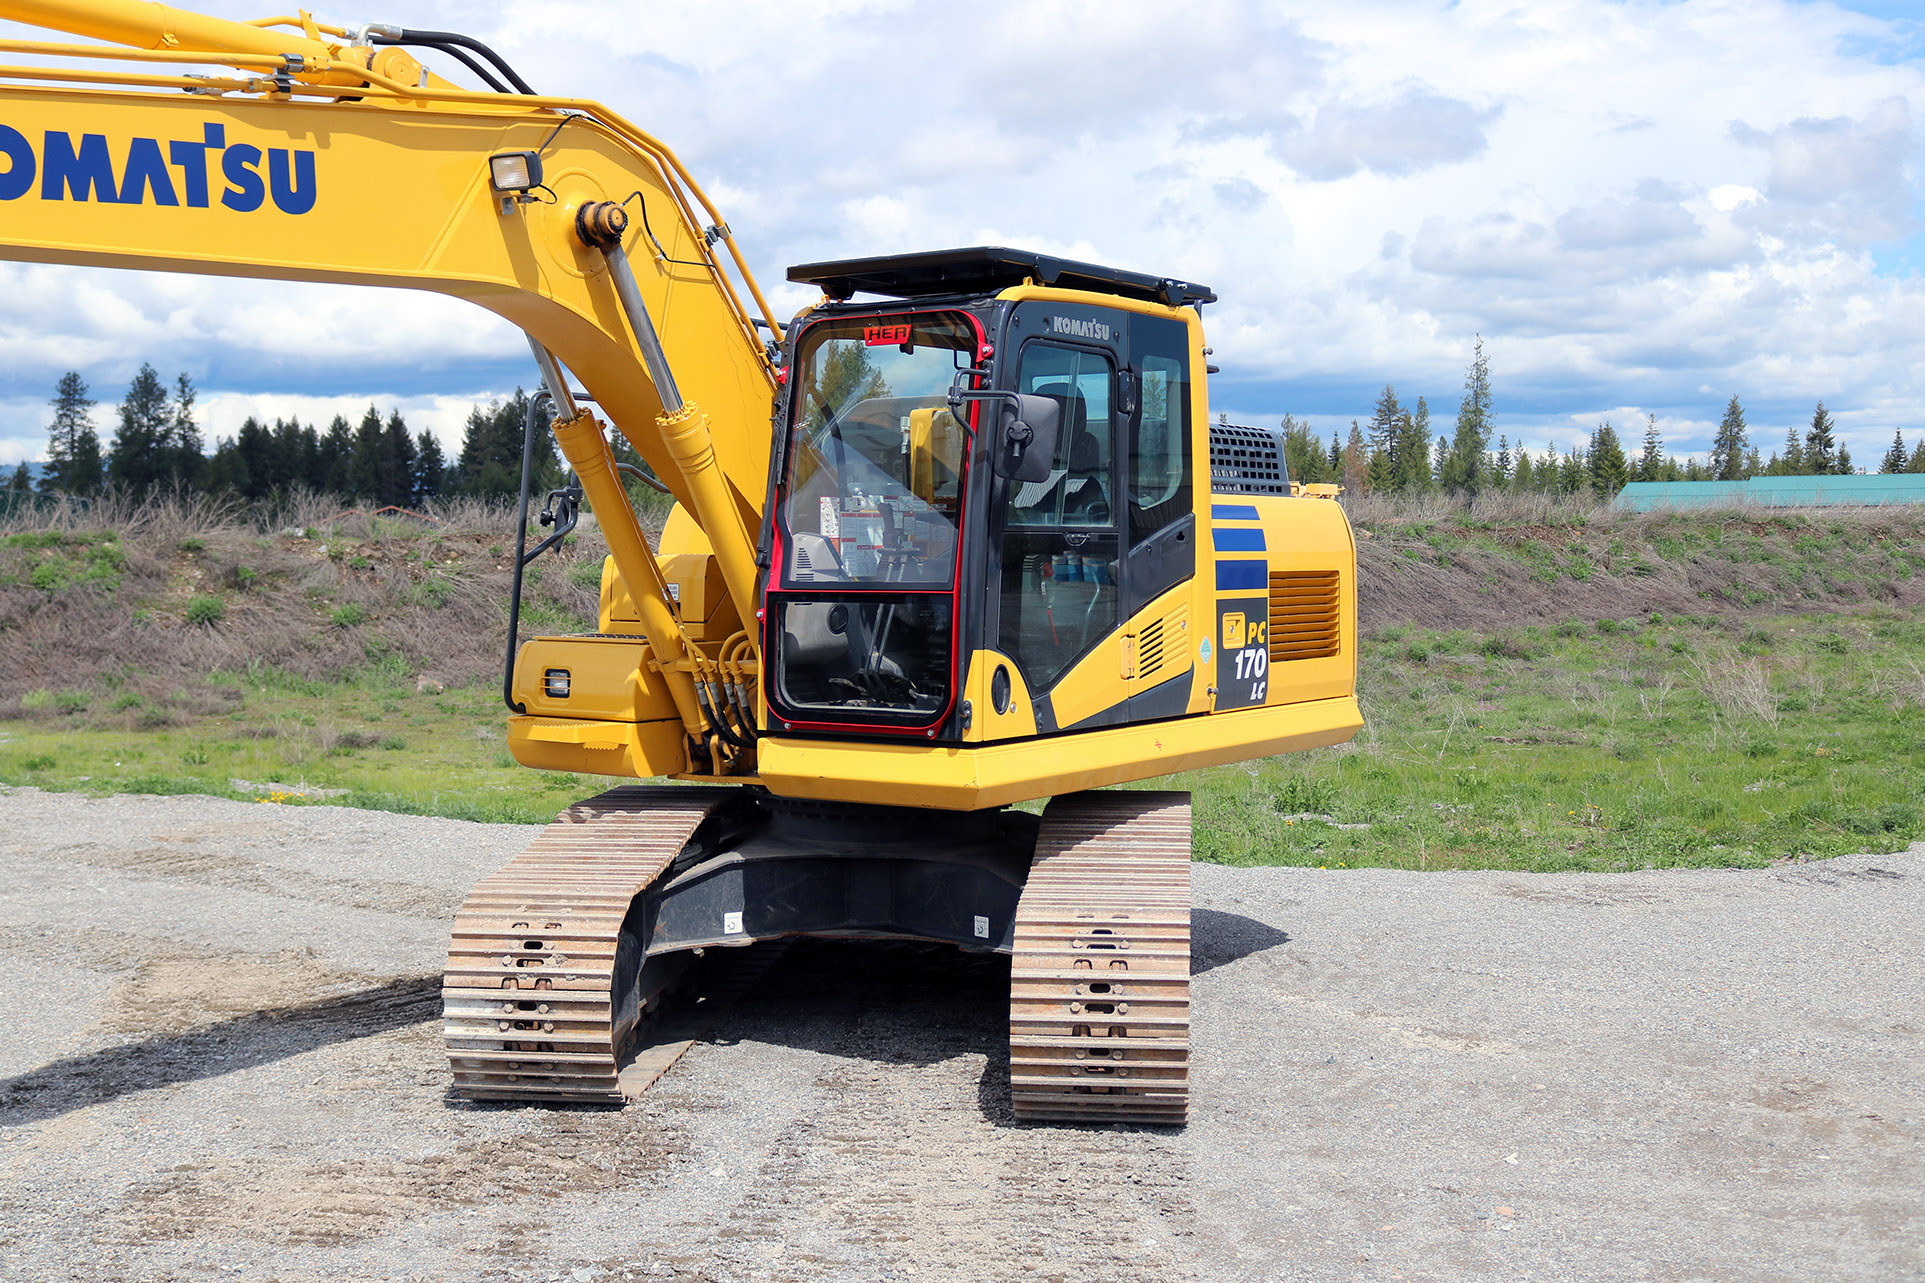 Komatsu PC170 Ballistic Window and Cab Guard